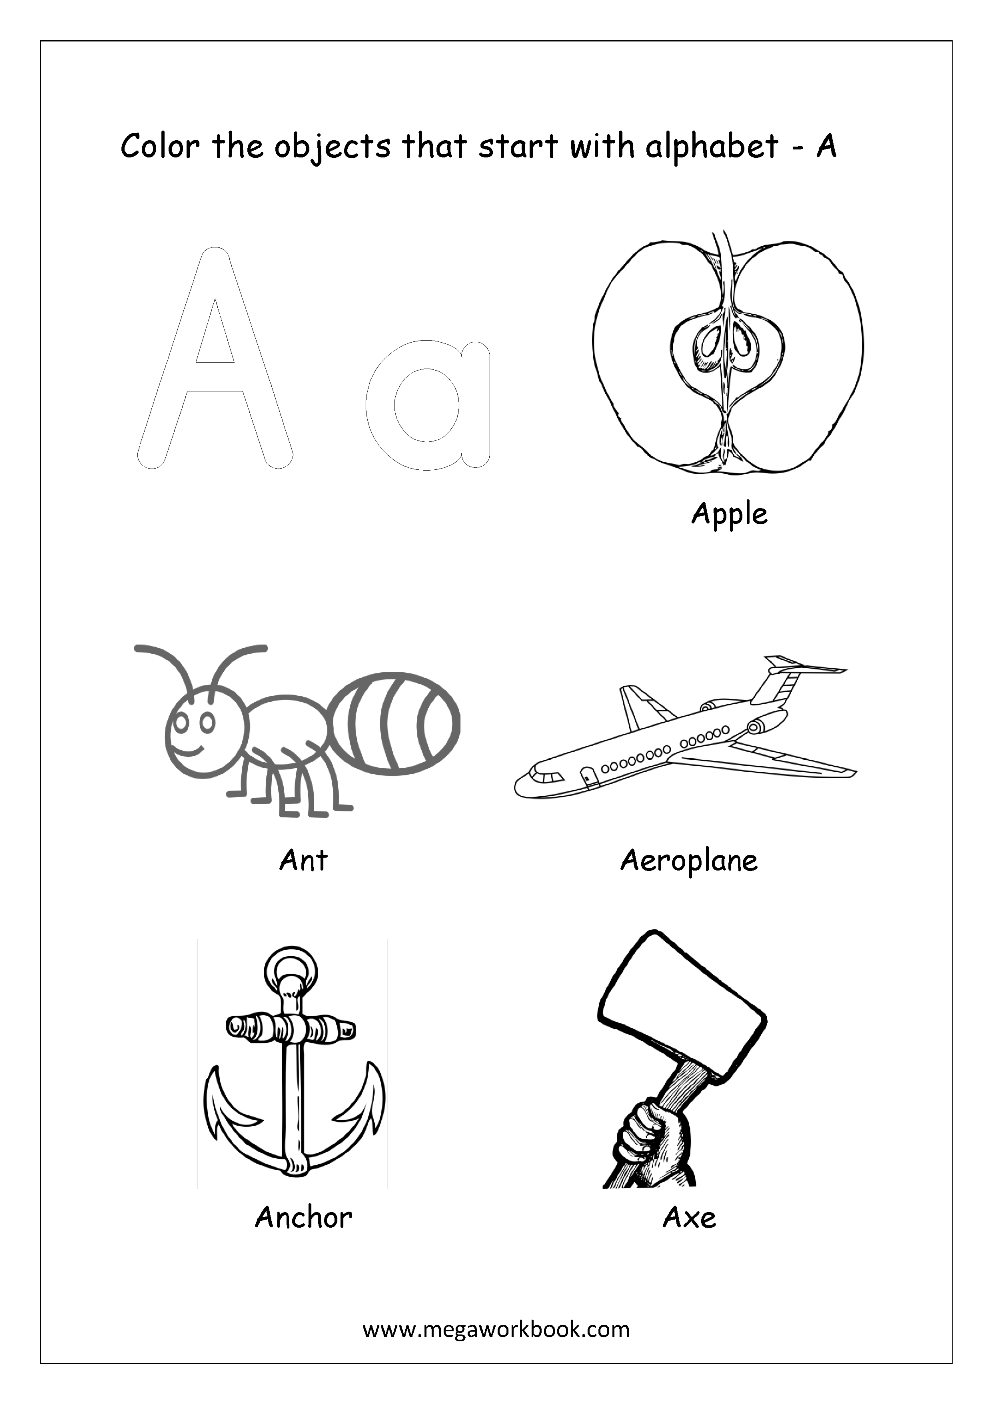 Free English Worksheets Alphabet Picture Coloring Megaworkbook